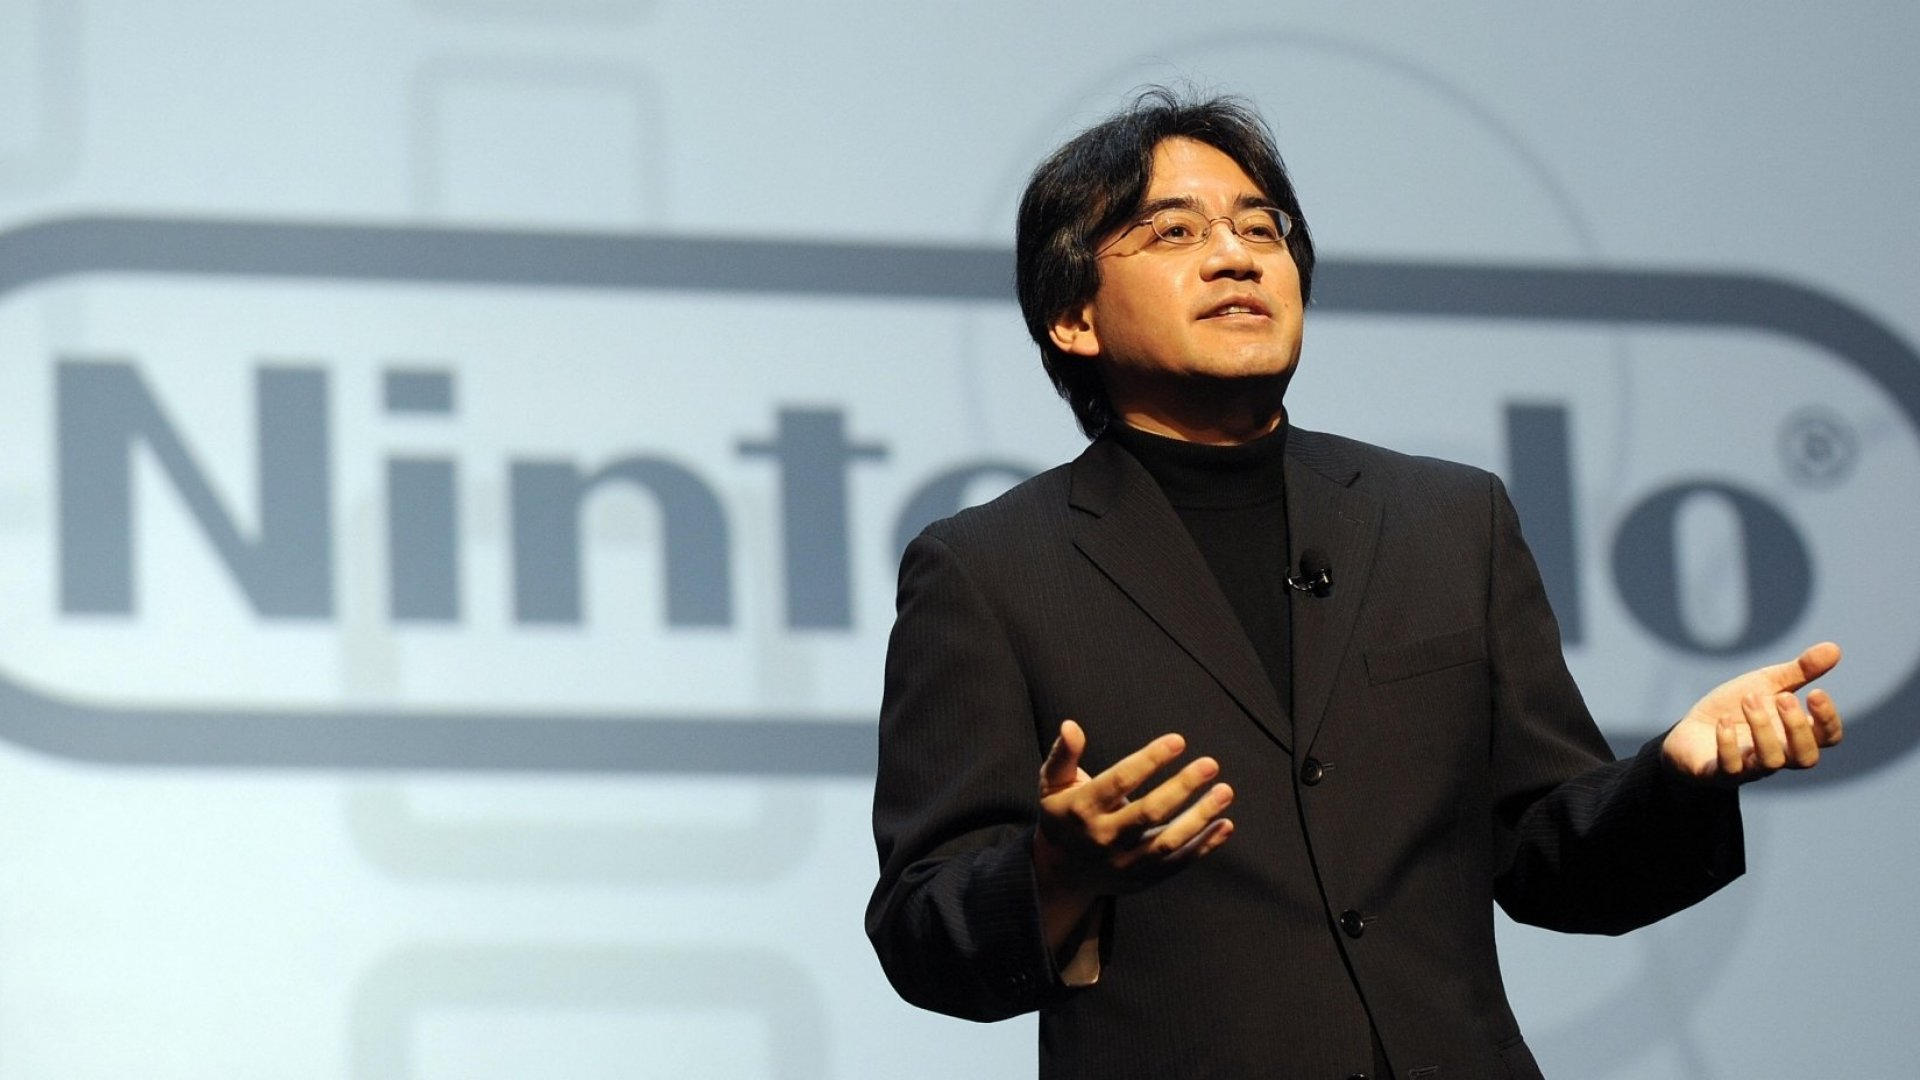 3 Simple Acts of Empathy That Made Nintendo's CEO an Effective Leader